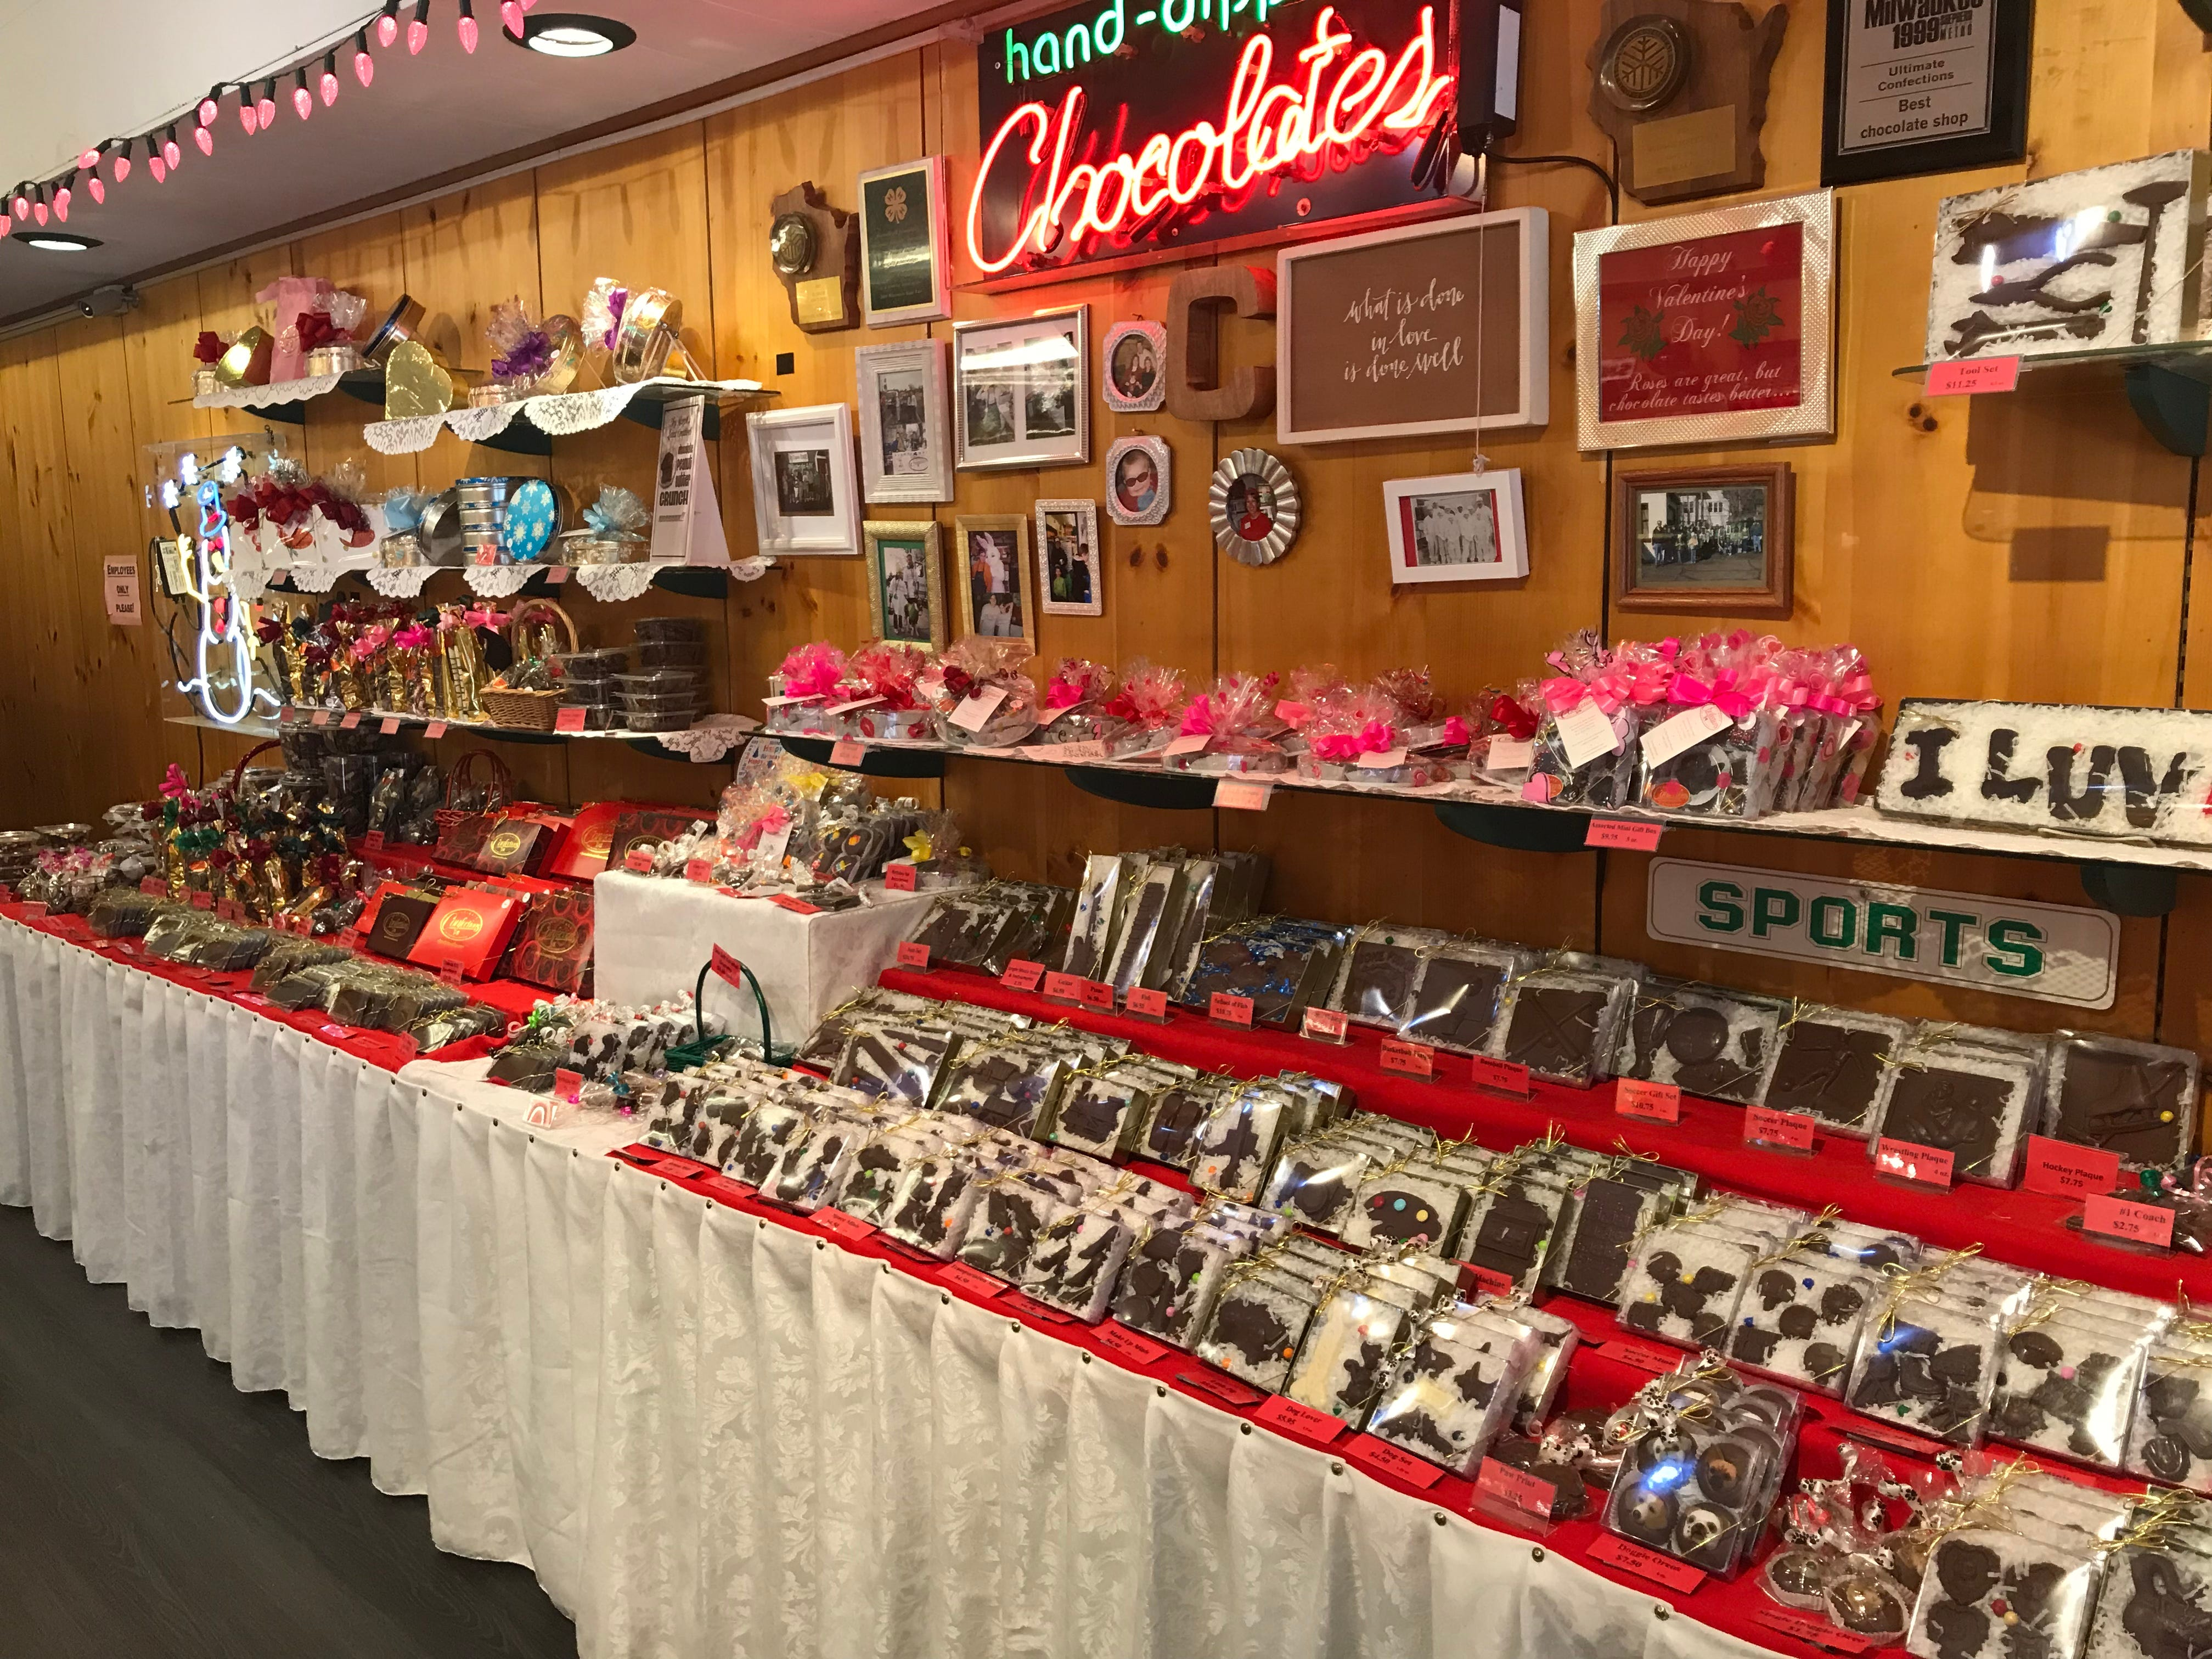 Ultimate Confections owner Pat Murphy said that the week of Valentine's Day is probably the busiest of the year.